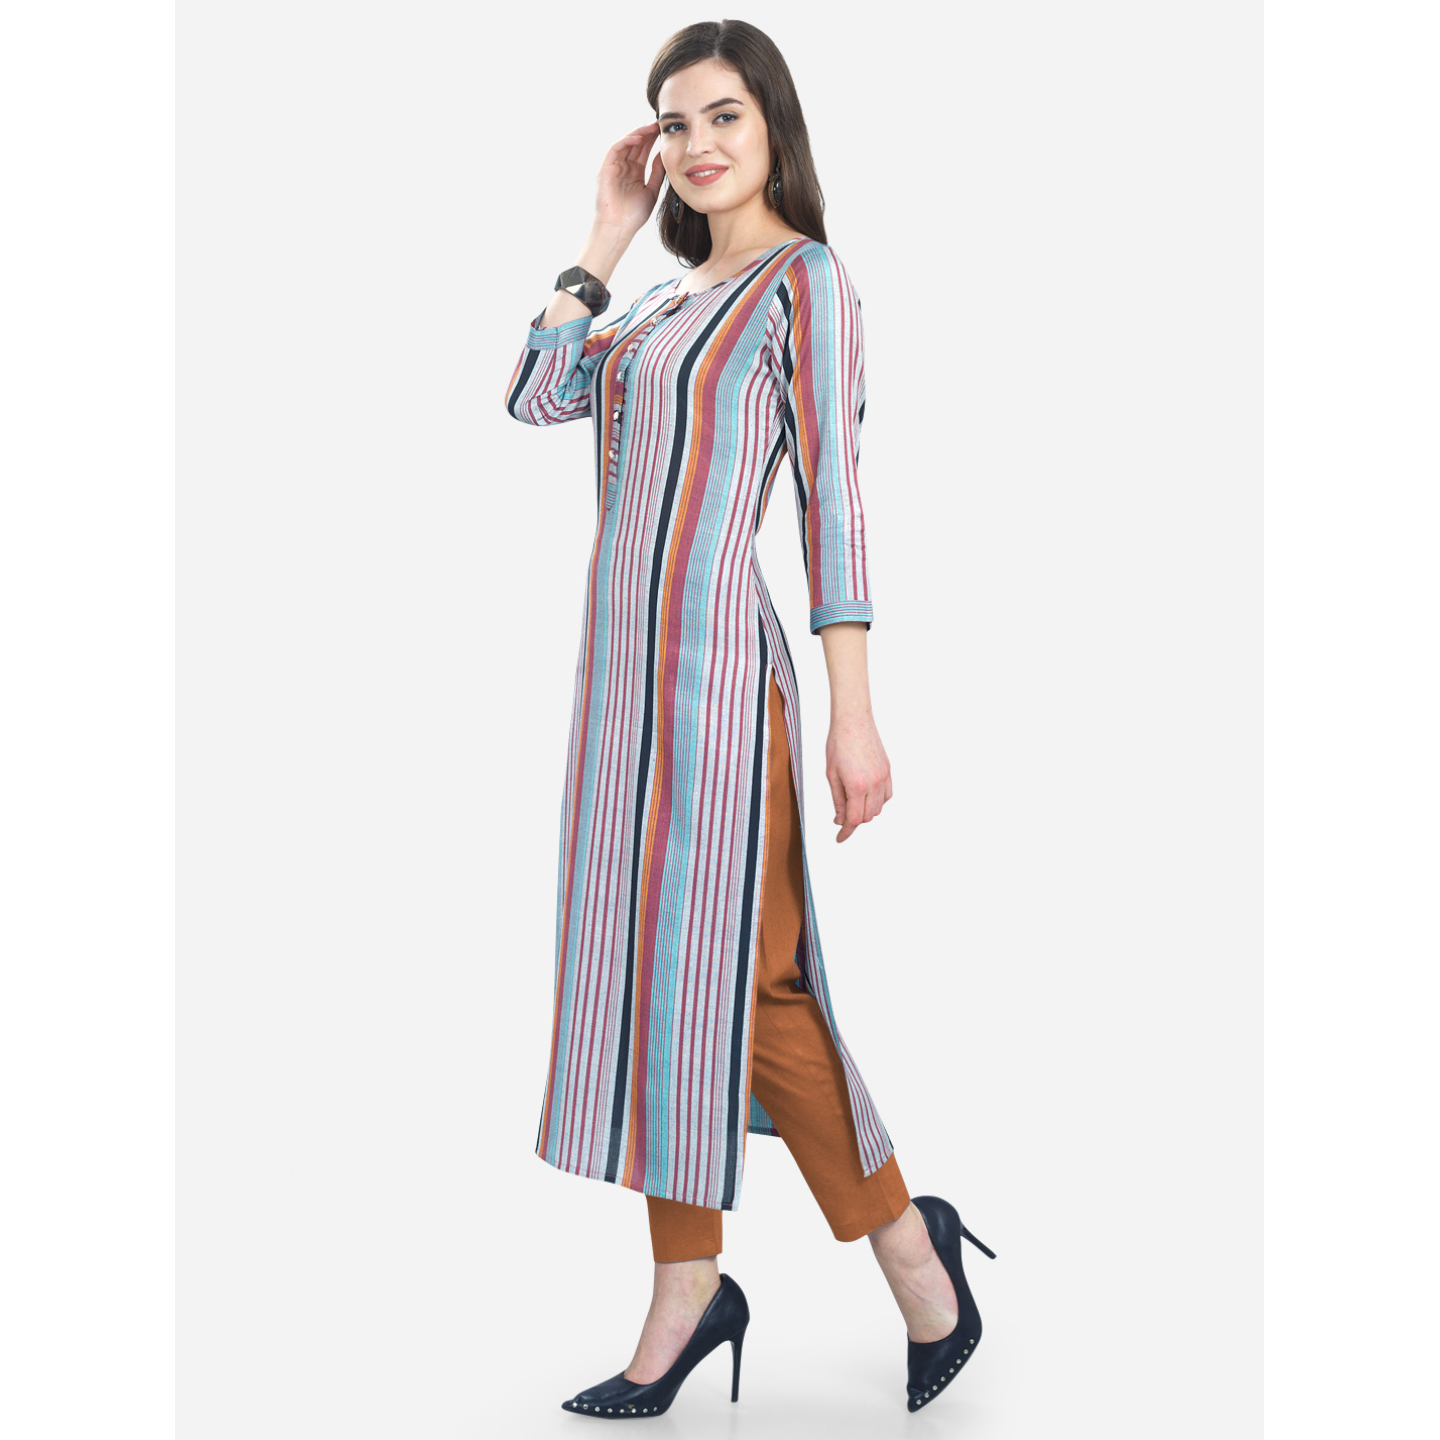 New Women's Multi-colored Cotton Kurti